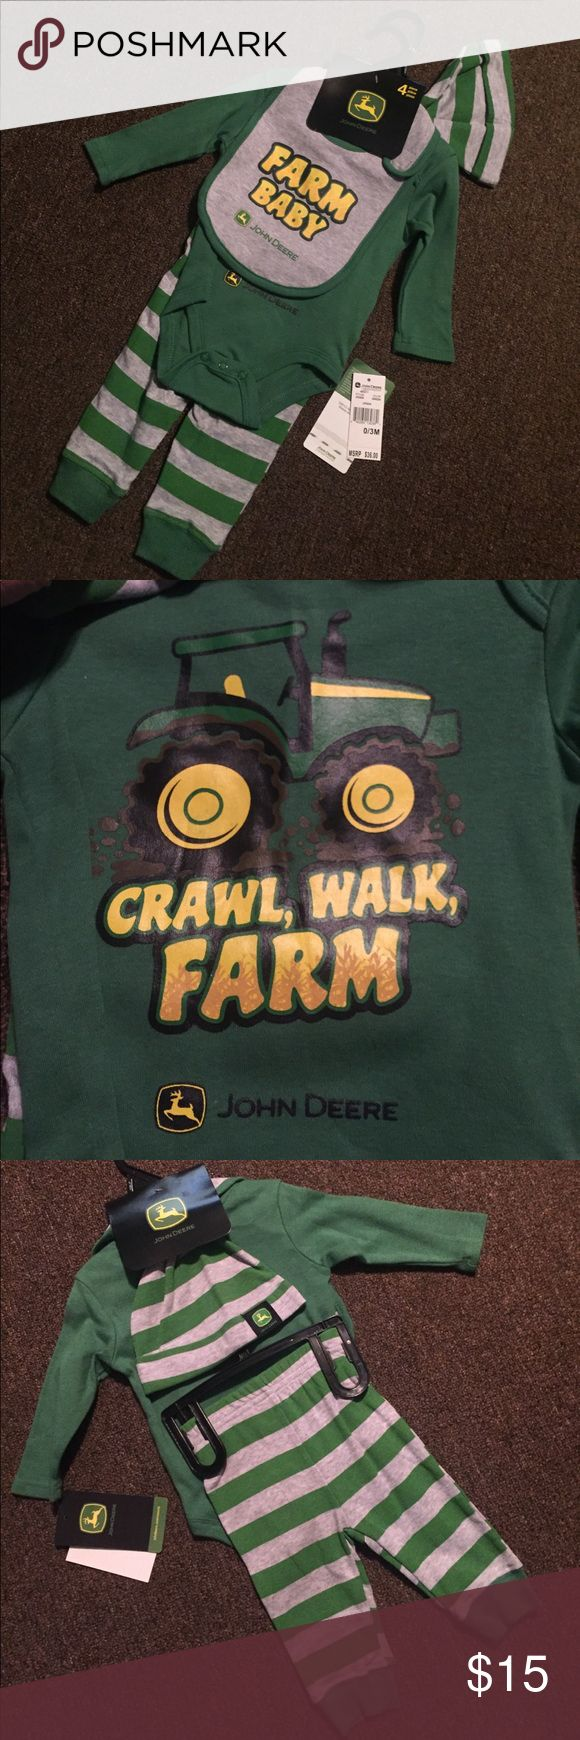 Baby 4 John Deere Piece Outfit Baby 4 John Deere Piece Outfit Size: 0/3 Months  1 - Bib 1 - Onesie  1 - Pair of Pants 1 - Hat ••NEW WITH TAGS•• John Deere Matching Sets